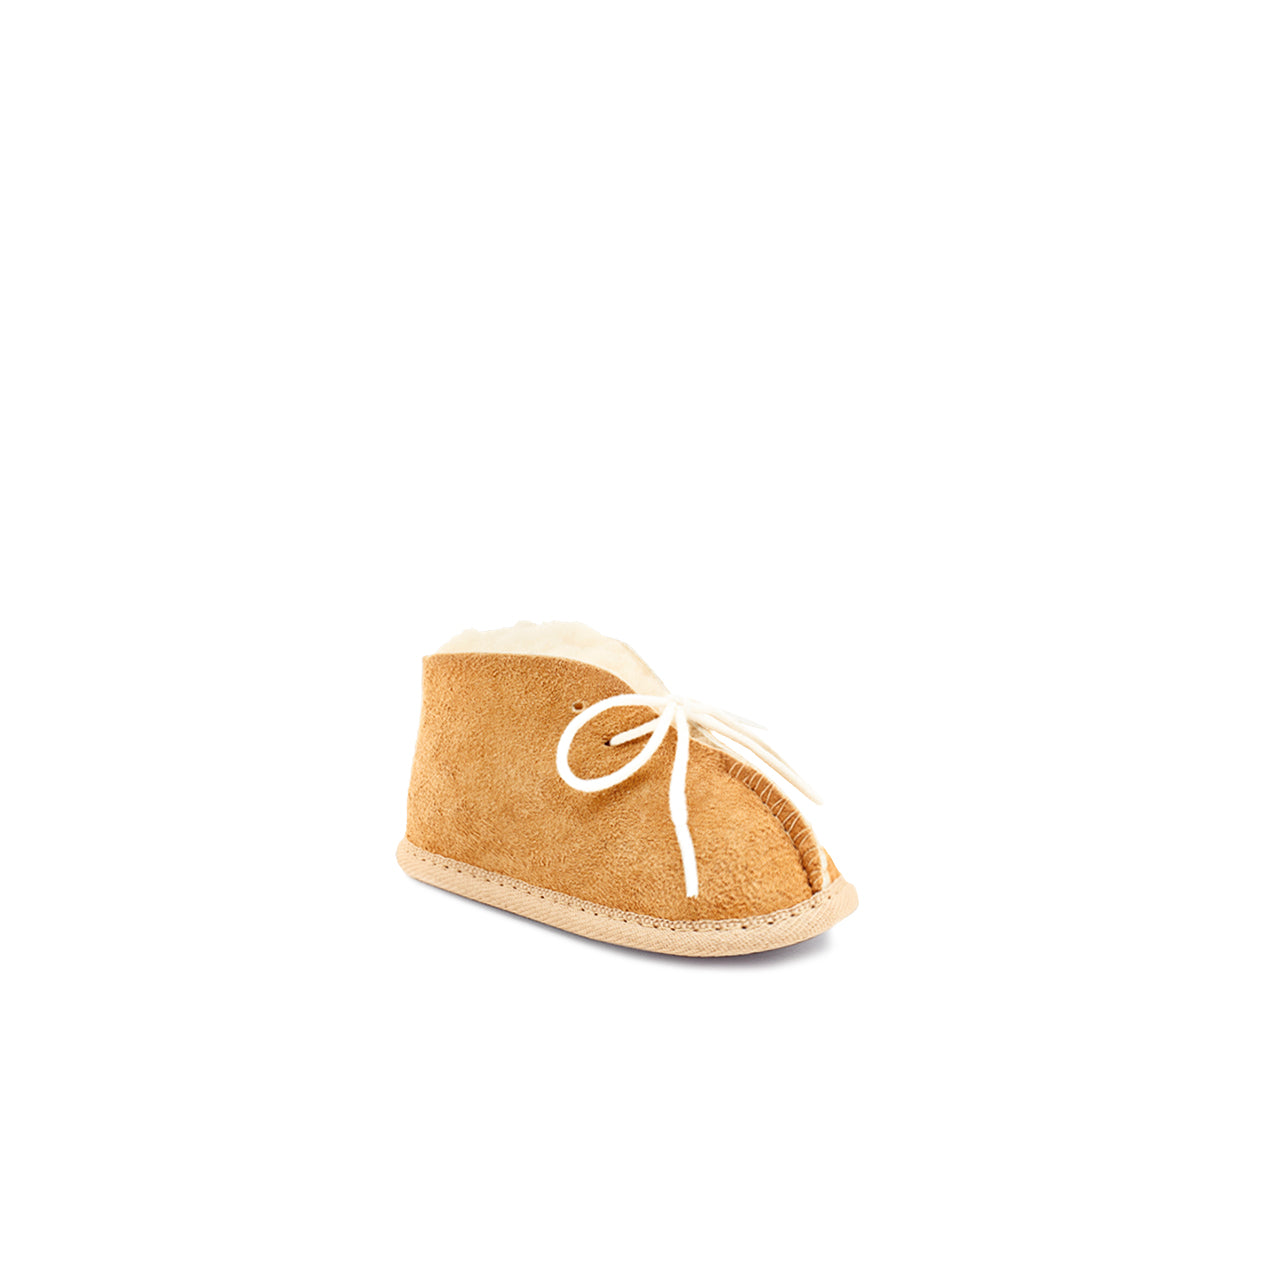 Sheepskin Baby Booties | 100% Australian Made | Roman & Ludmila